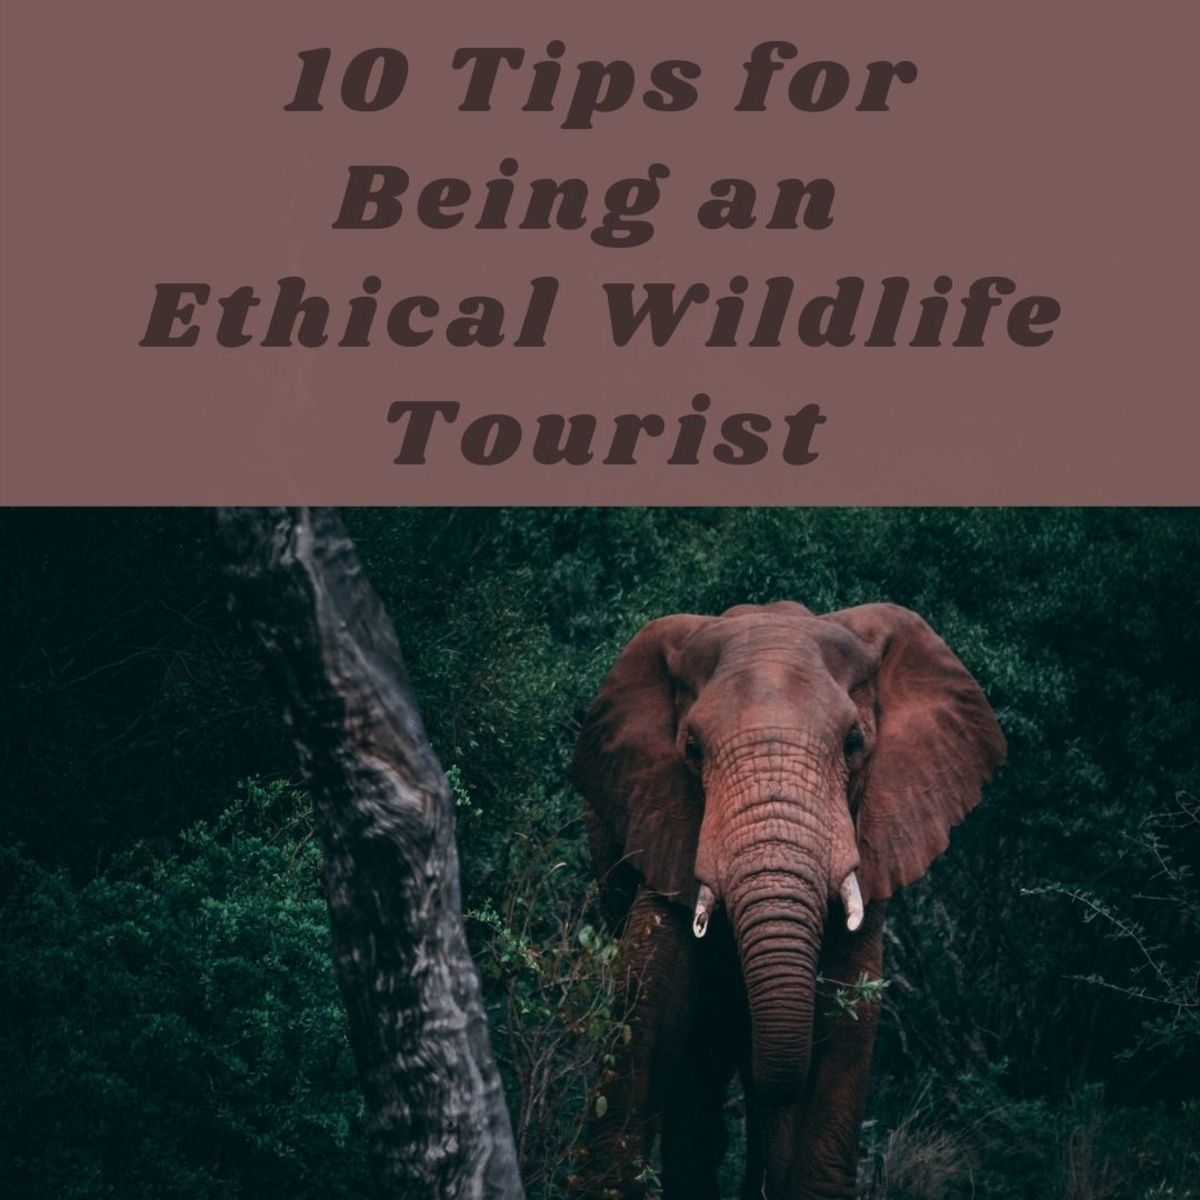 Here are some things you should consider before heading off to your next exotic wildlife tourism experience.